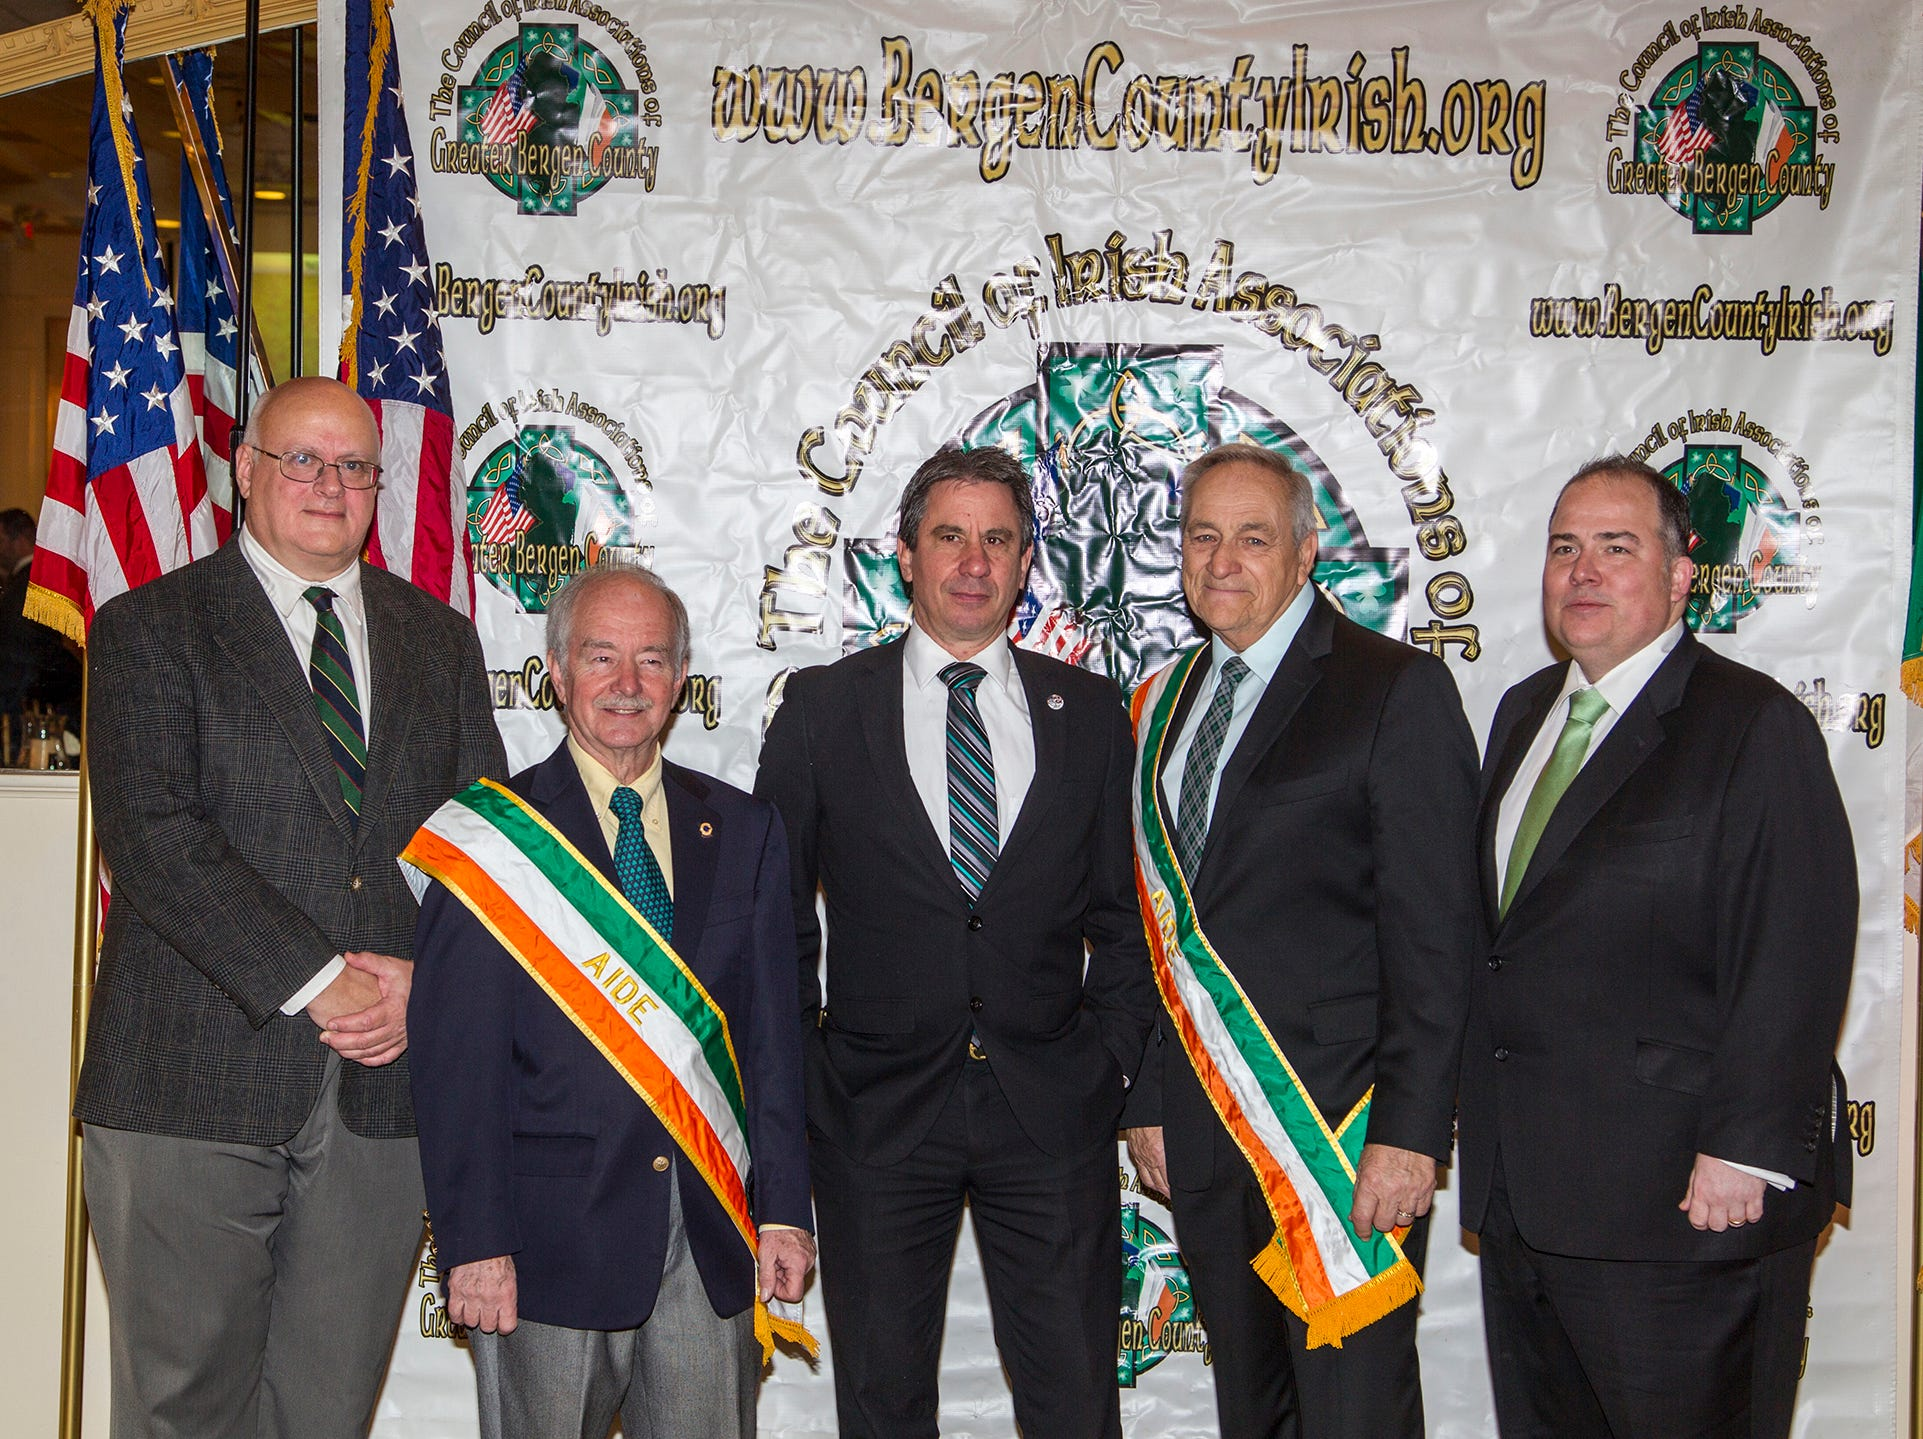 Kevin Duffy, Tom Neats, Norman Schmelz, Joe Verga, Tom O'Reilly. 38th Annual St. Patrick's Day parade Installation Dance at The Graycliff in Moonachie. 2/23/2019